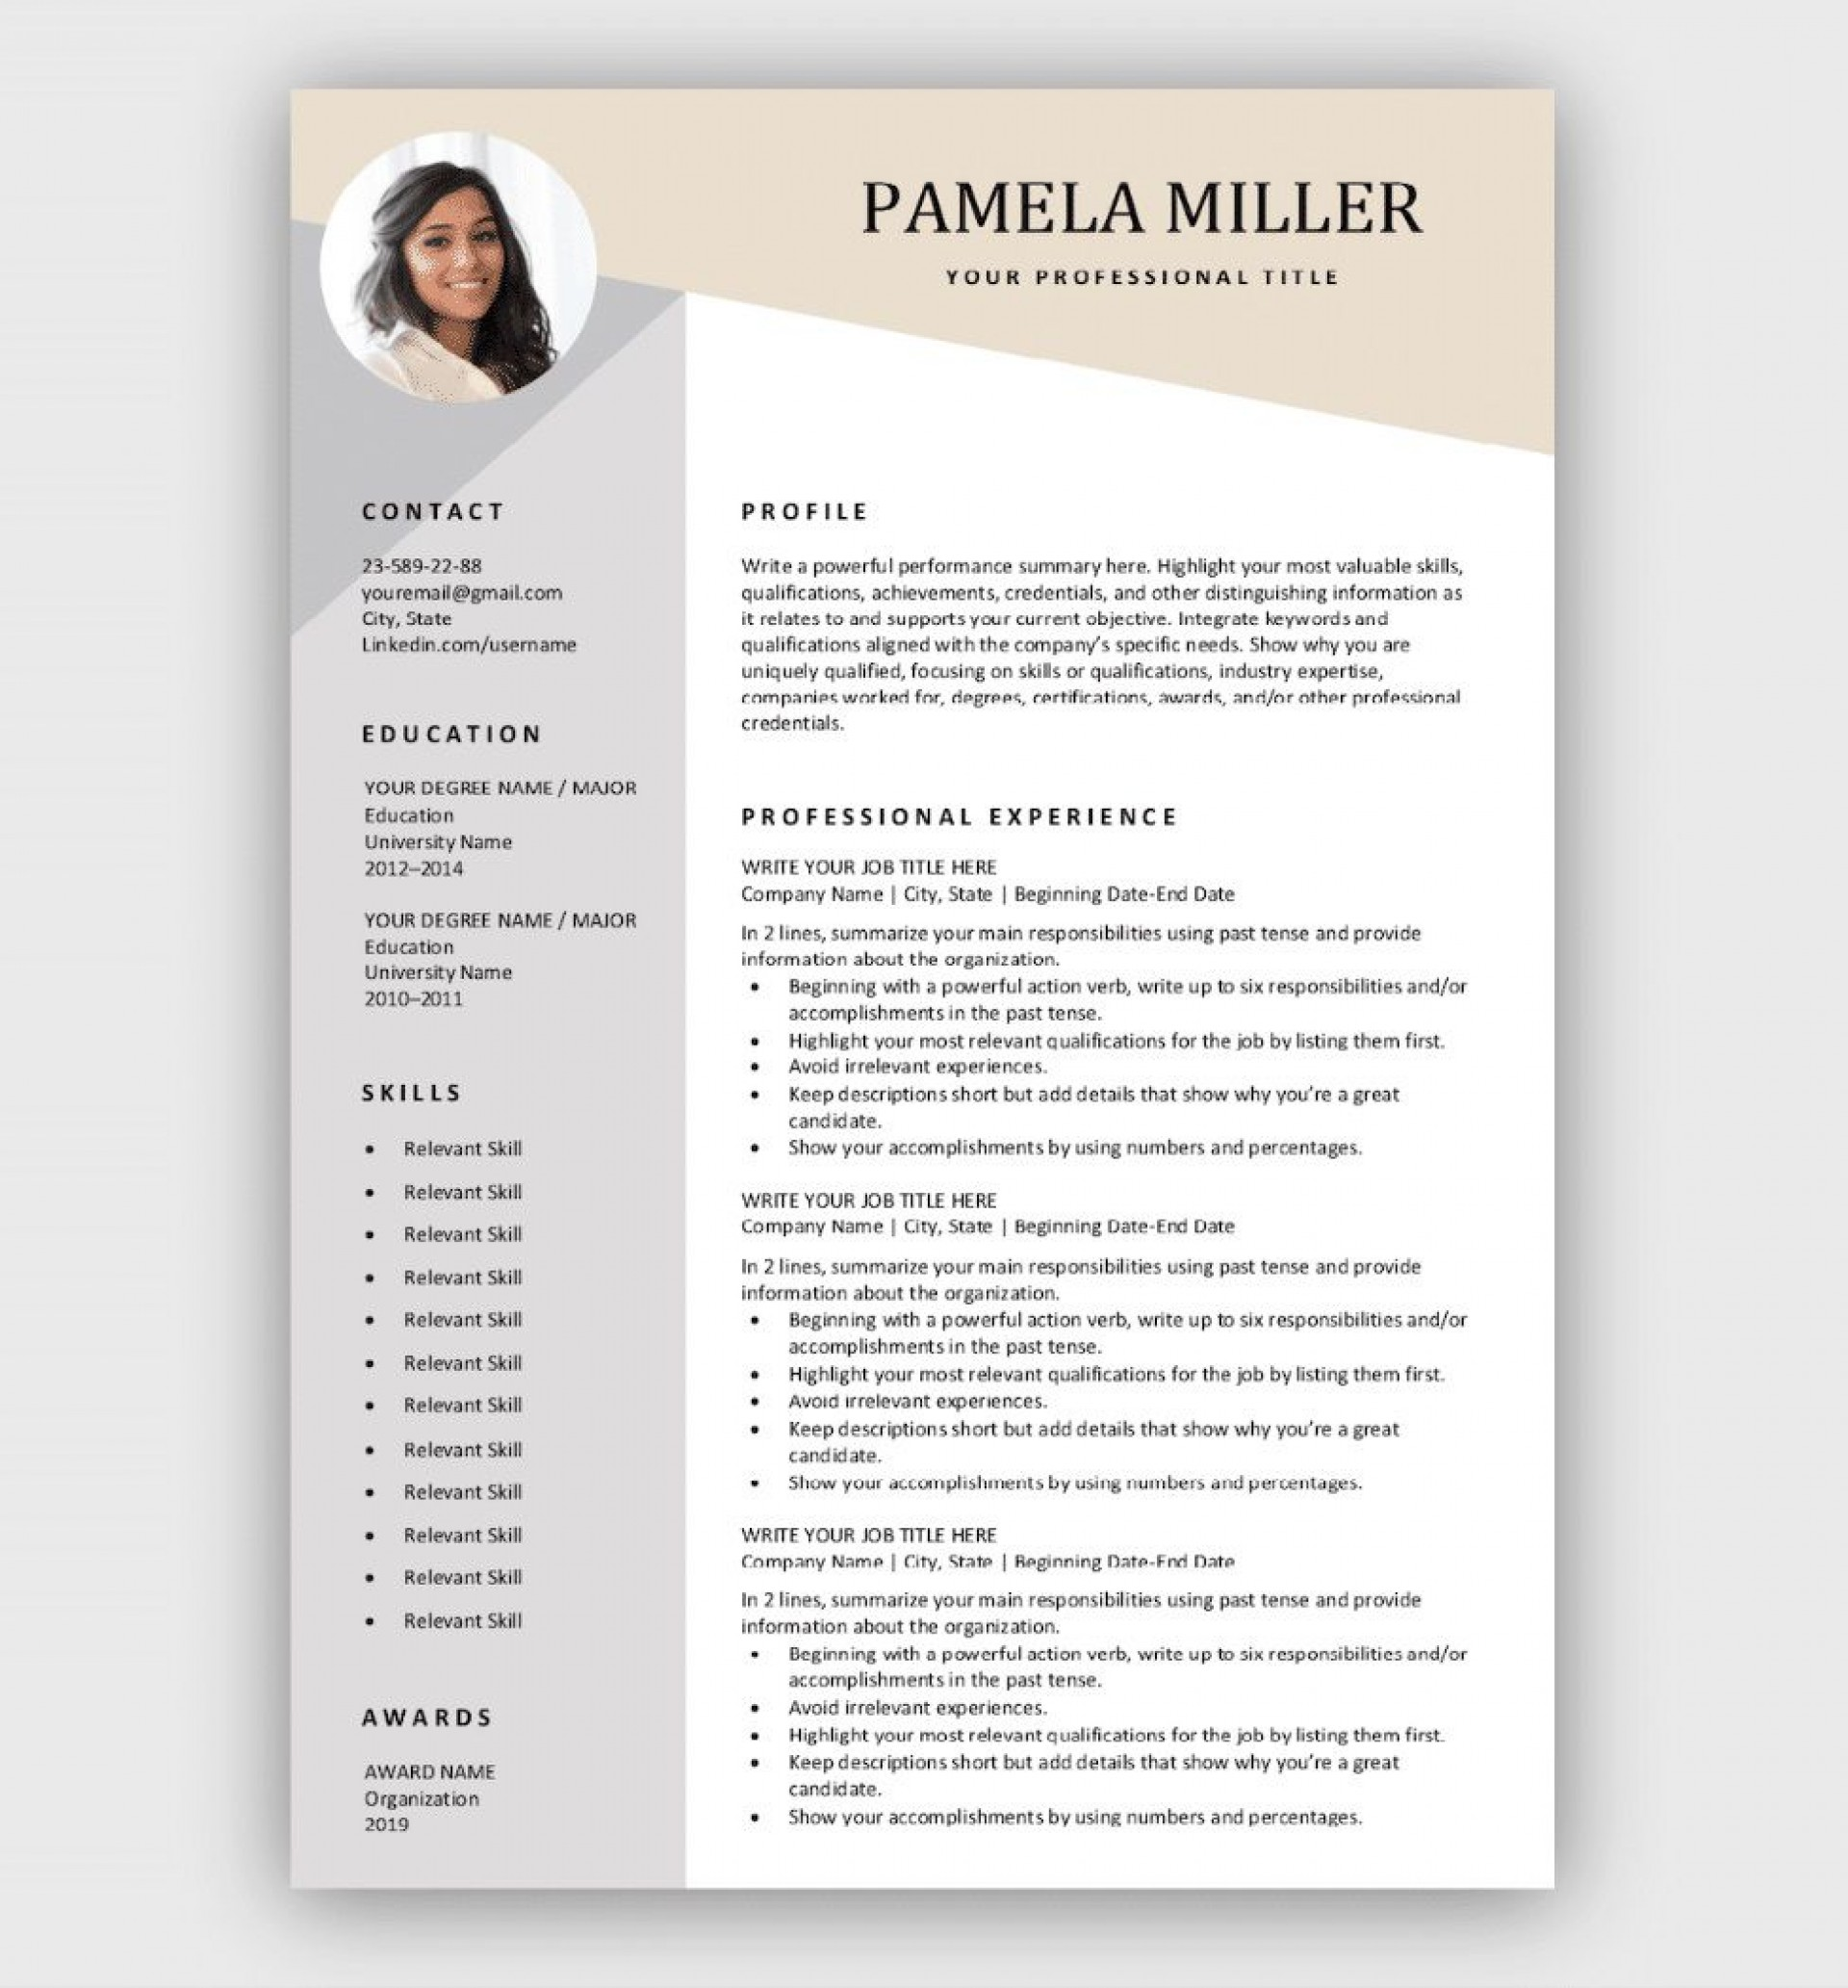 006 Formidable Download Free Resume Template Photo  Word Professional 2019 20201920